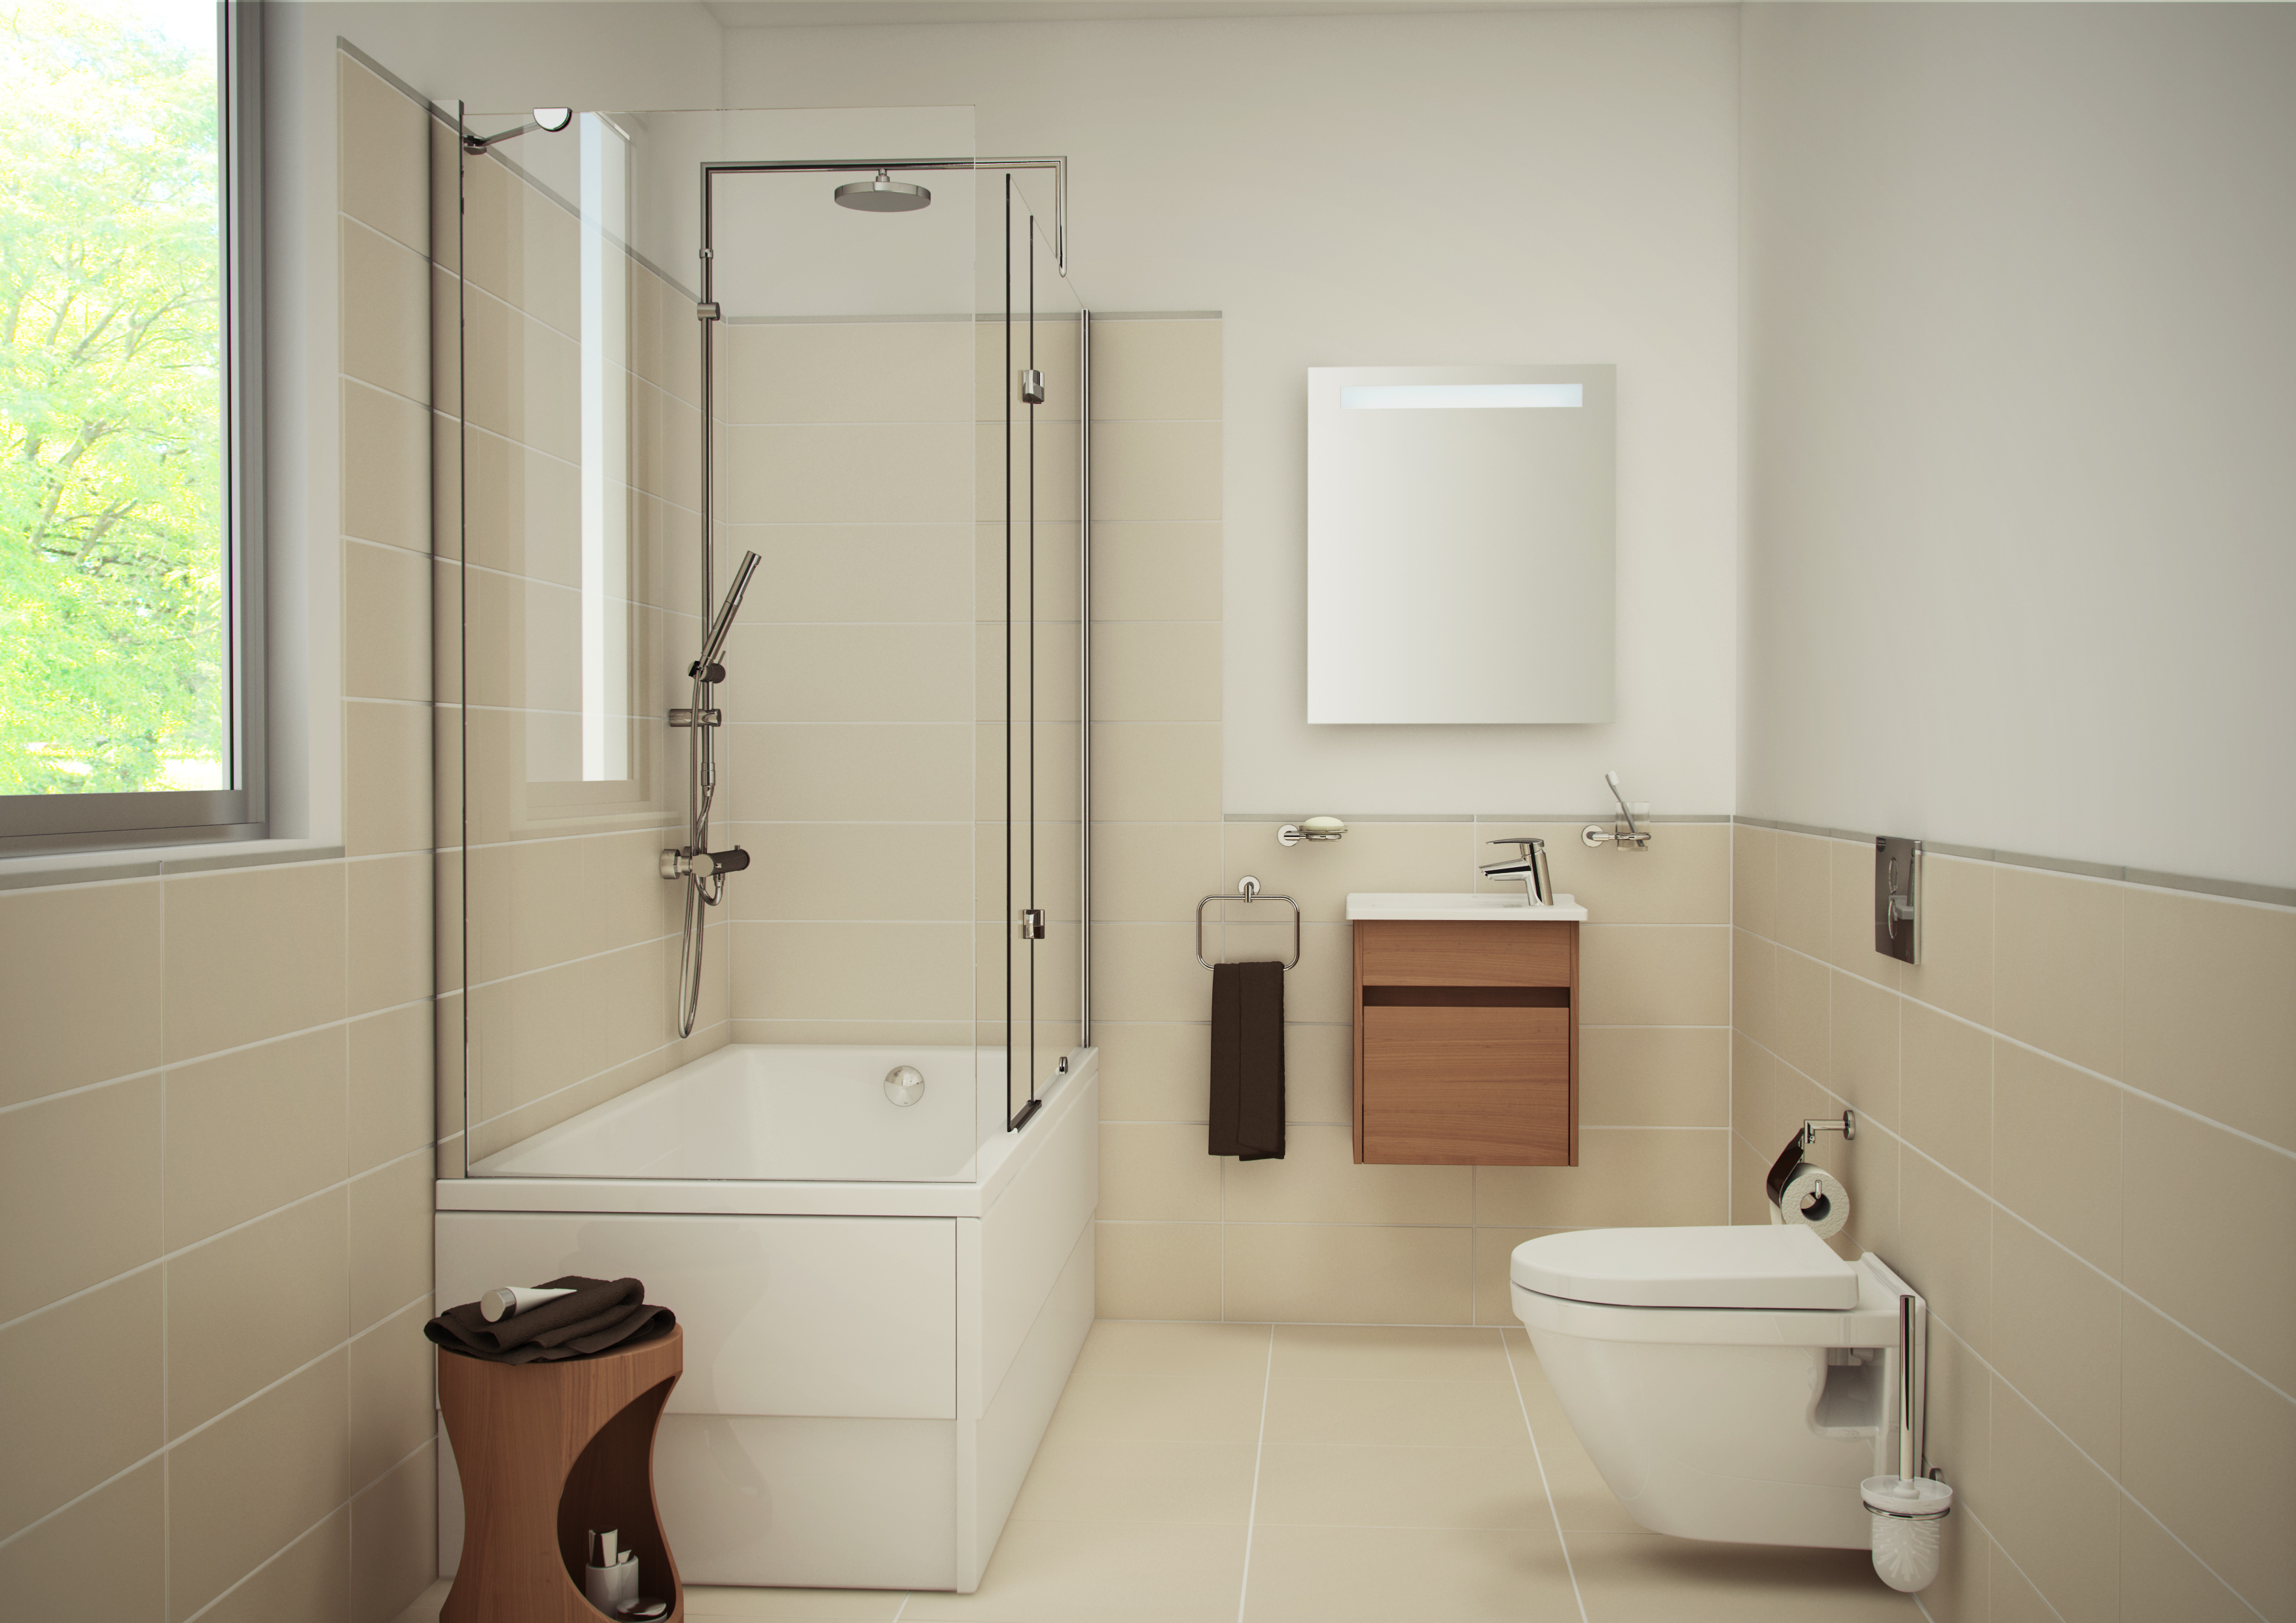 Robert Lee to distribute VitrA bathroom products |